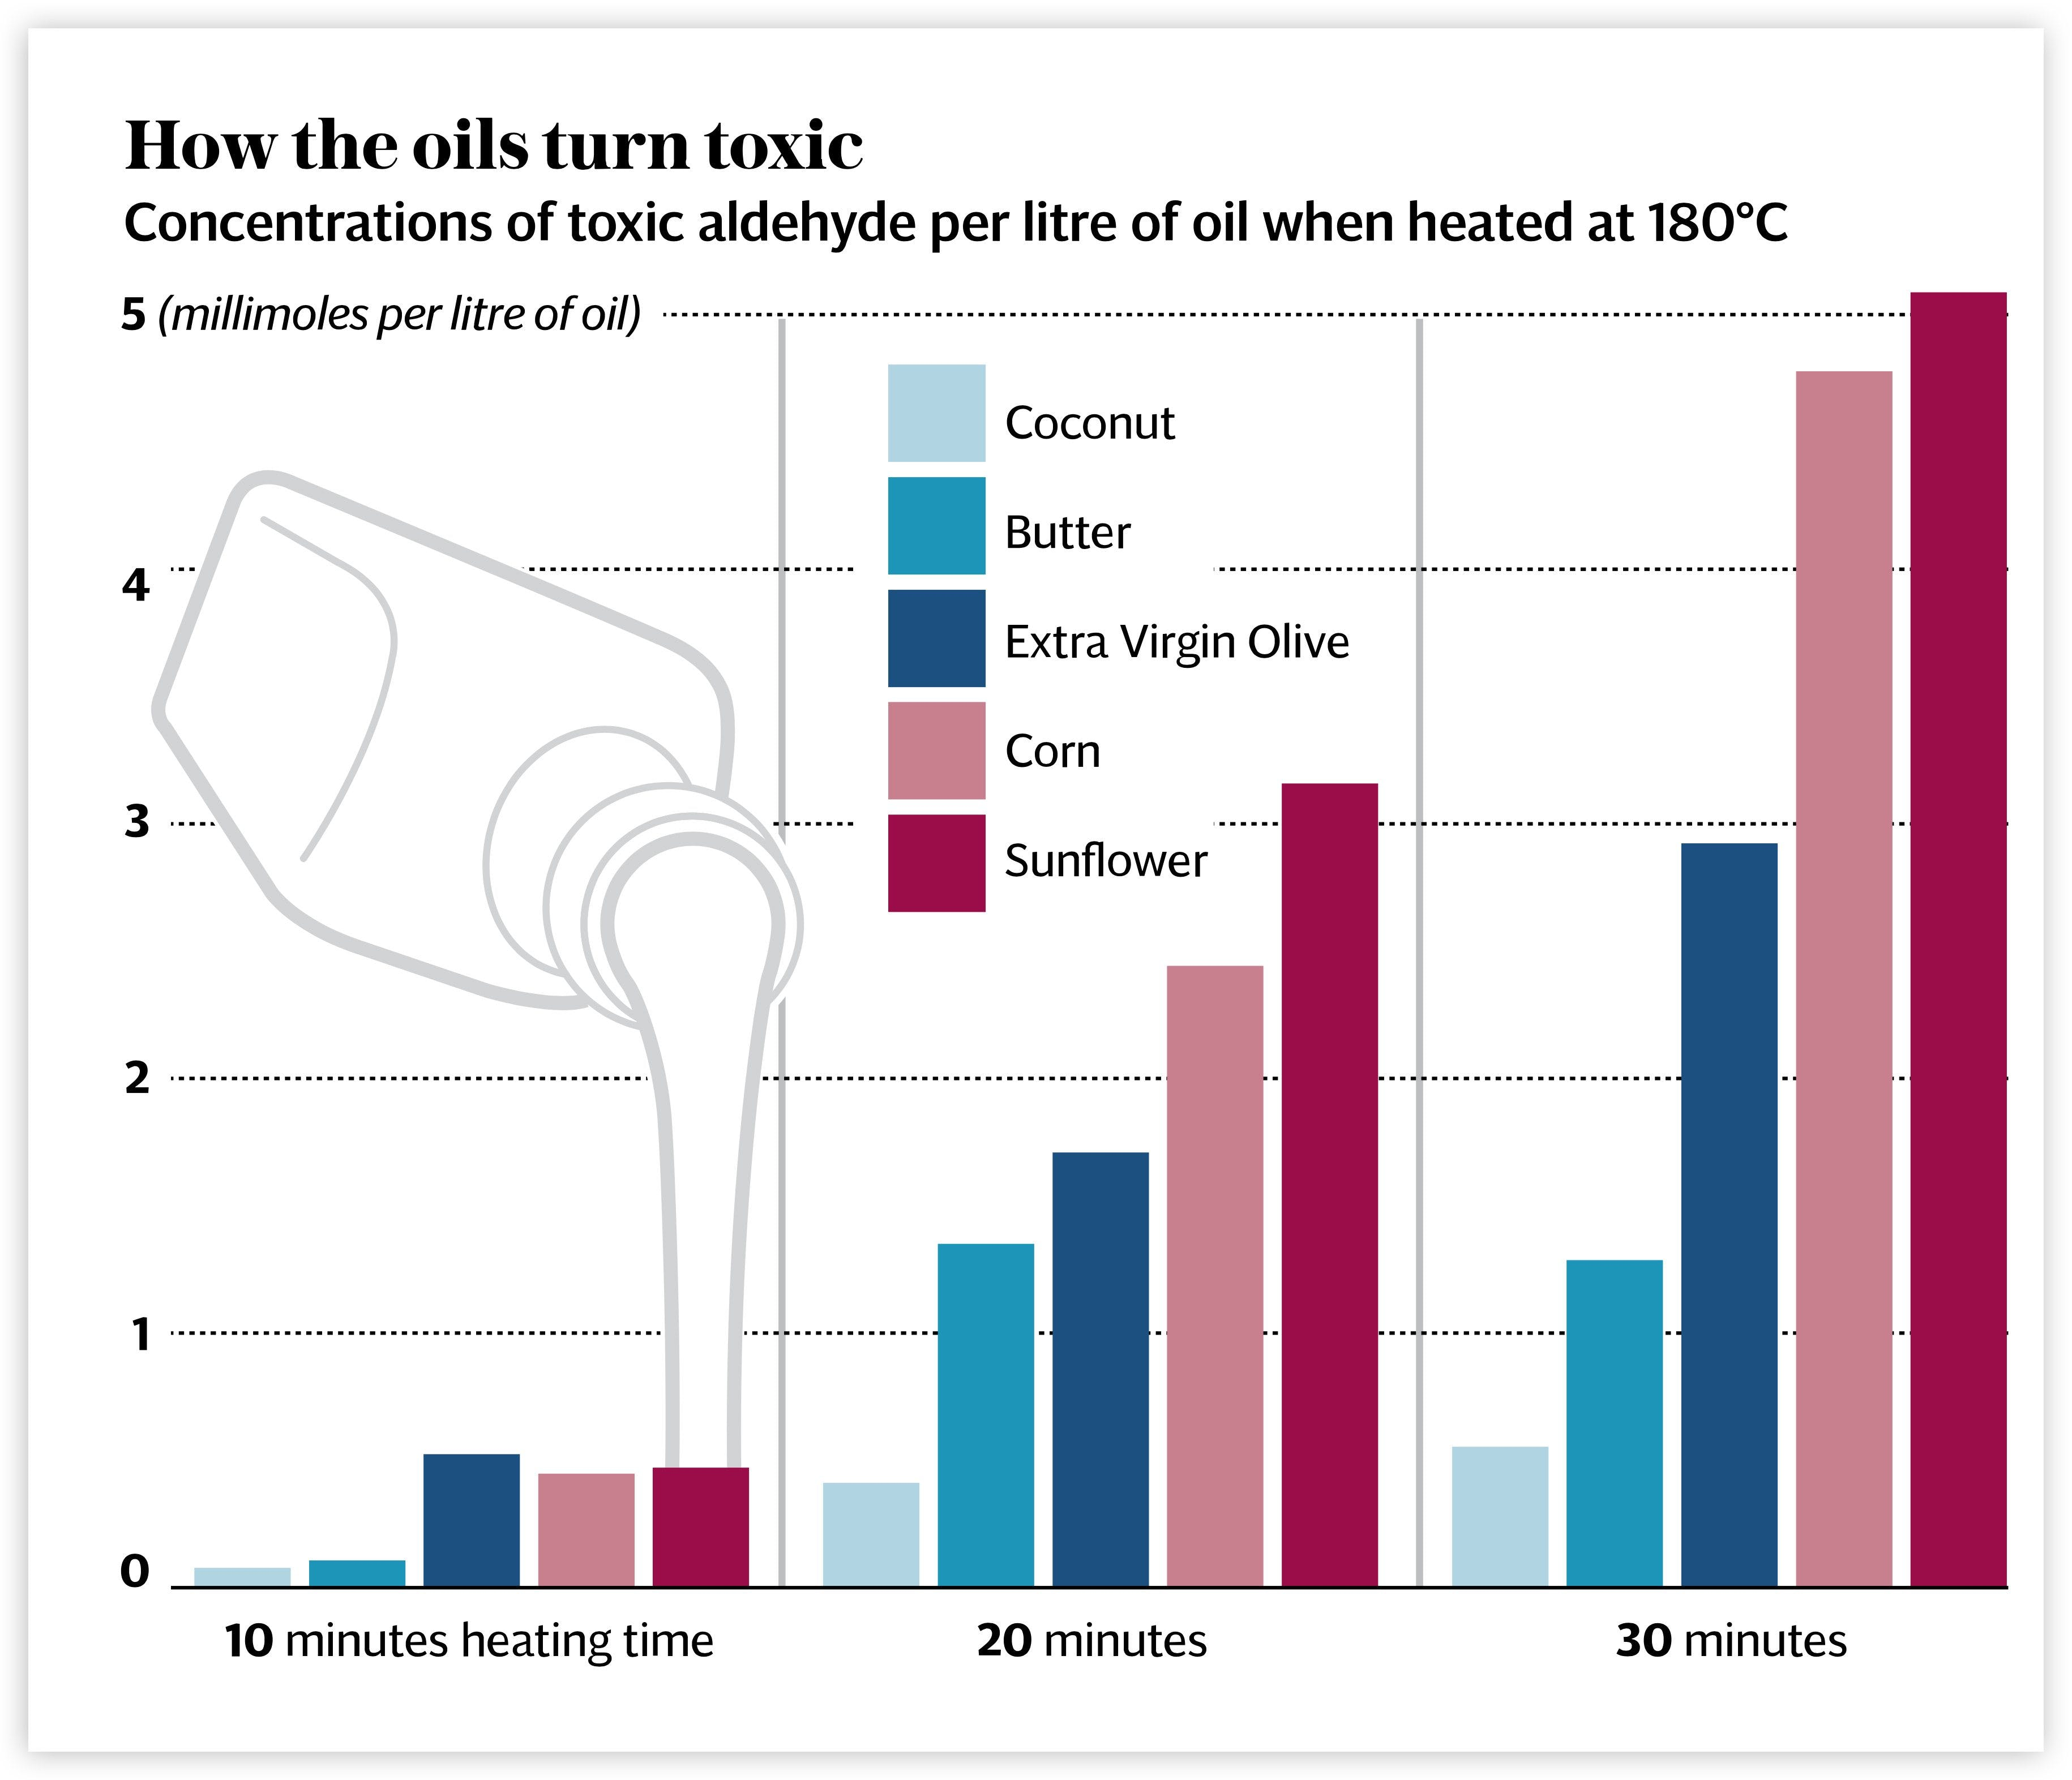 Cooking with Vegetable Oils Releases Toxic Cancer-Causing Chemicals